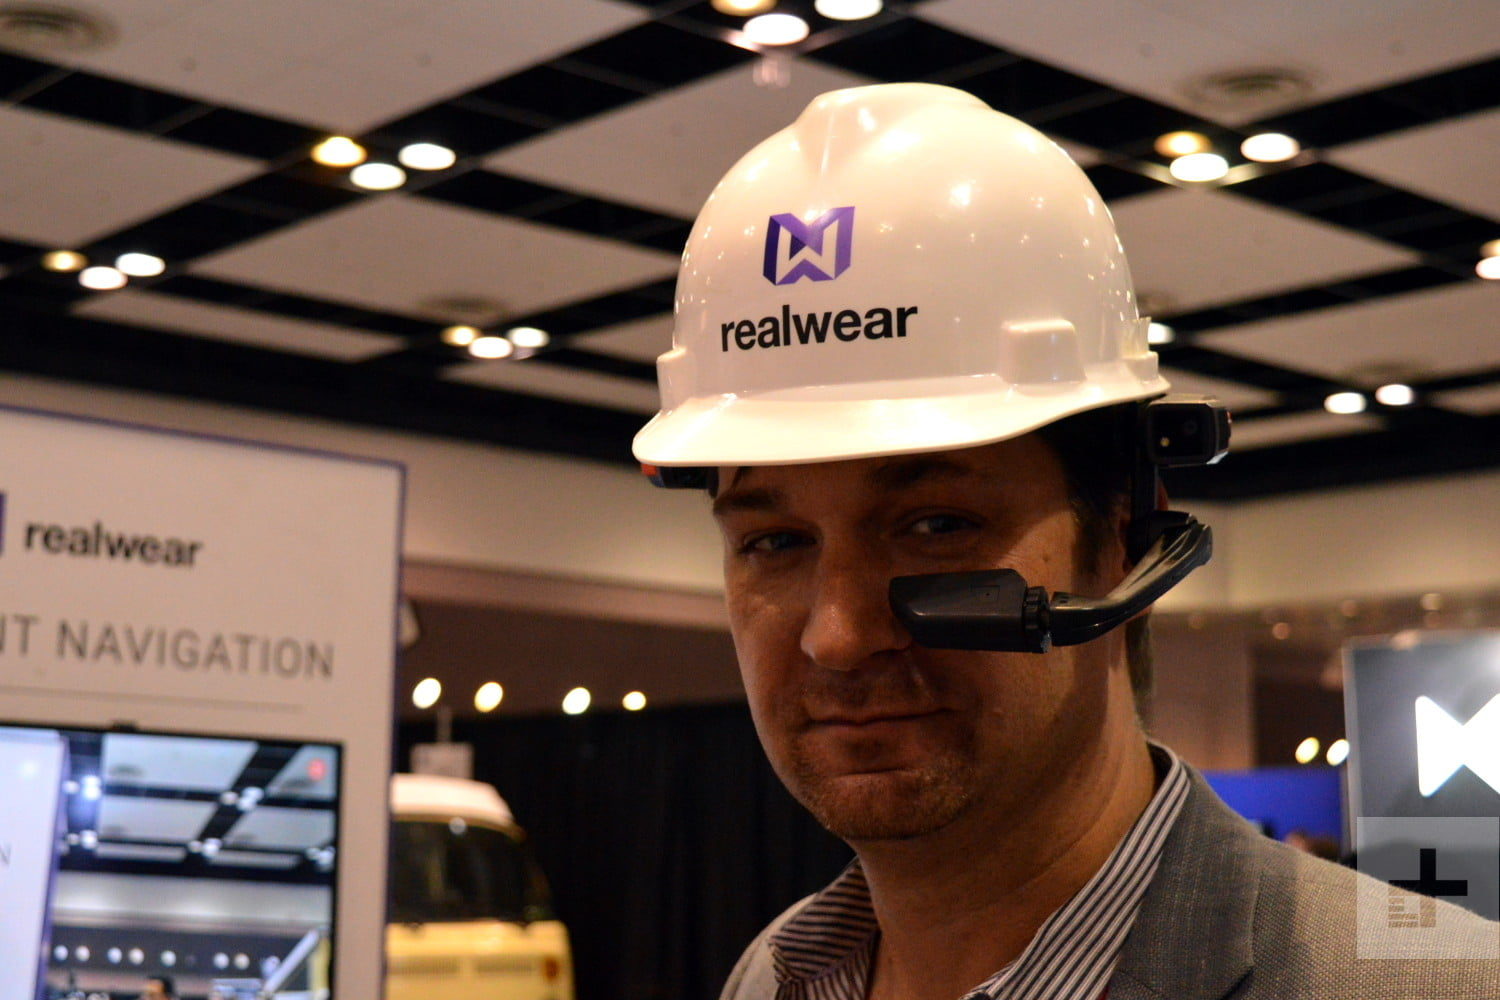 realwear hmt 1z1 augmented reality headset 1